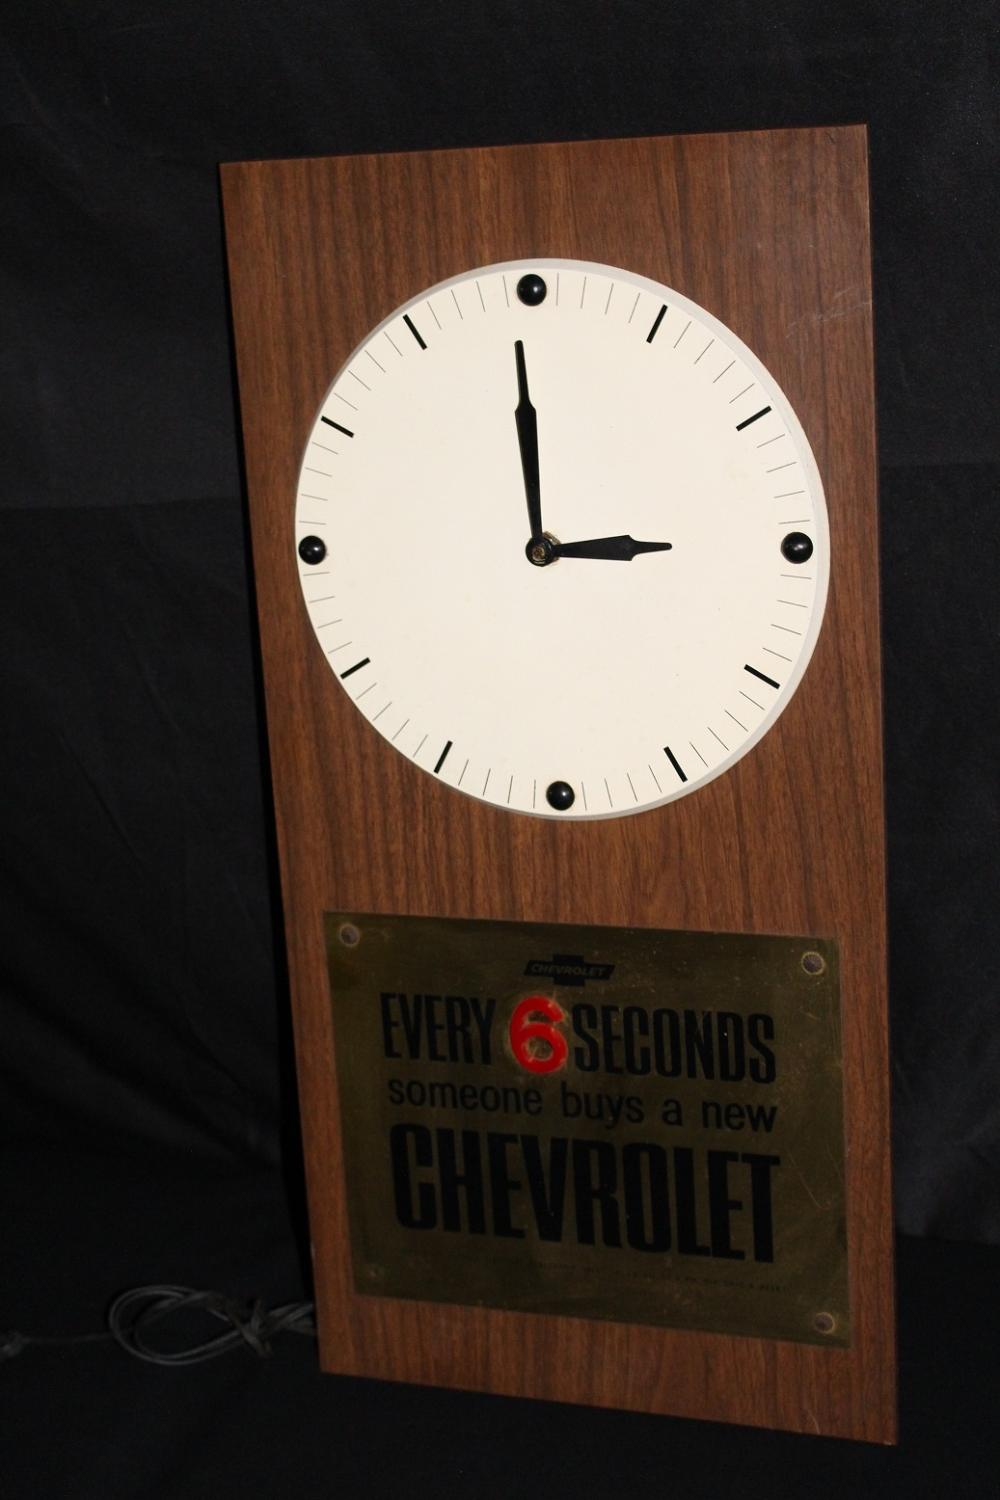 EVERY 6 SECONDS SOMEONE BUYS A CHEVROLET CLOCK